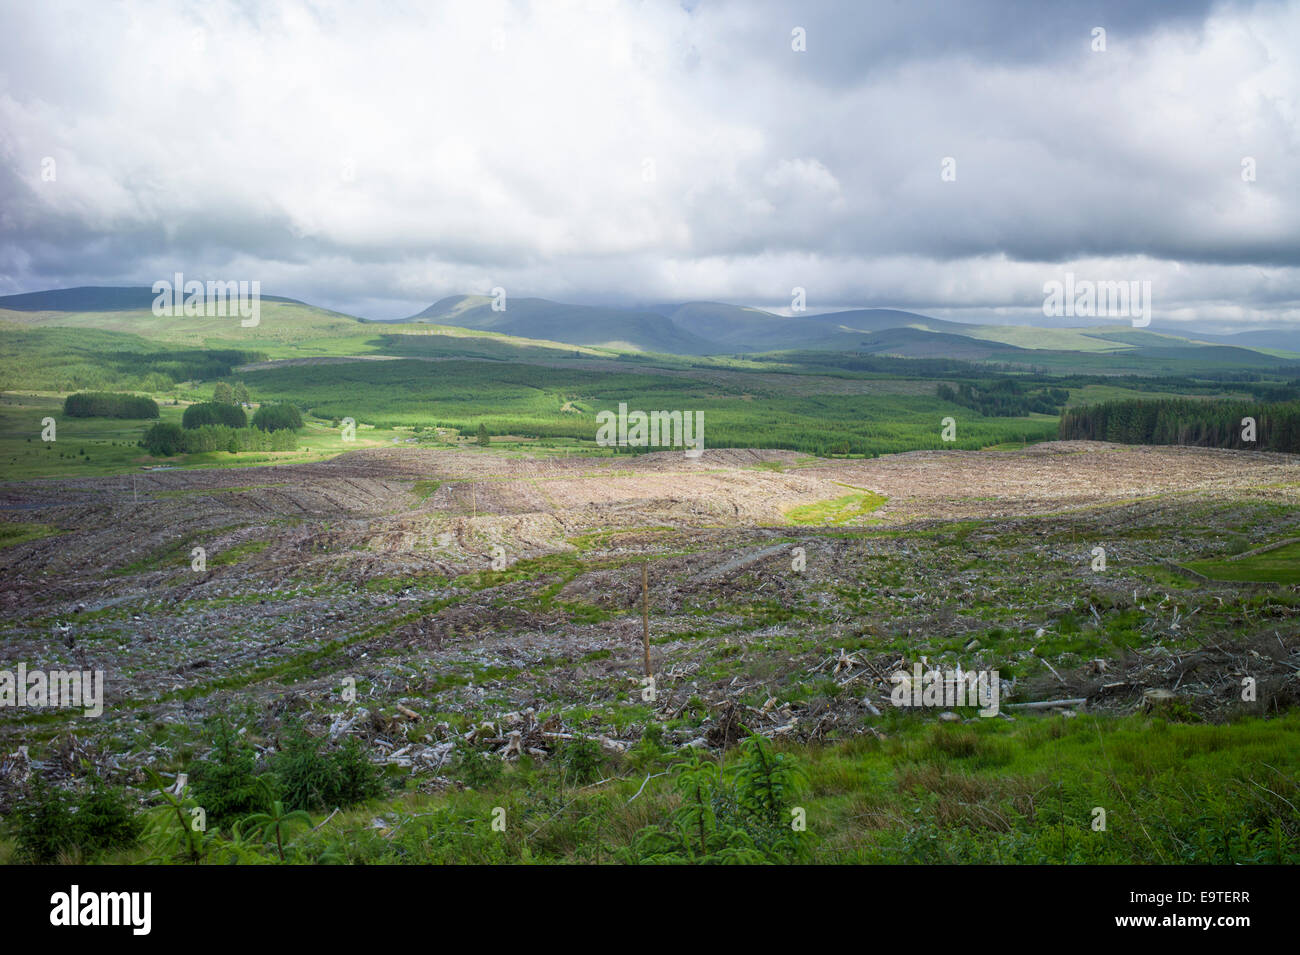 Razed forest of pine trees stripped for timber at Forestry Commission coniferous plantation in Galloway Forest Park, - Stock Image